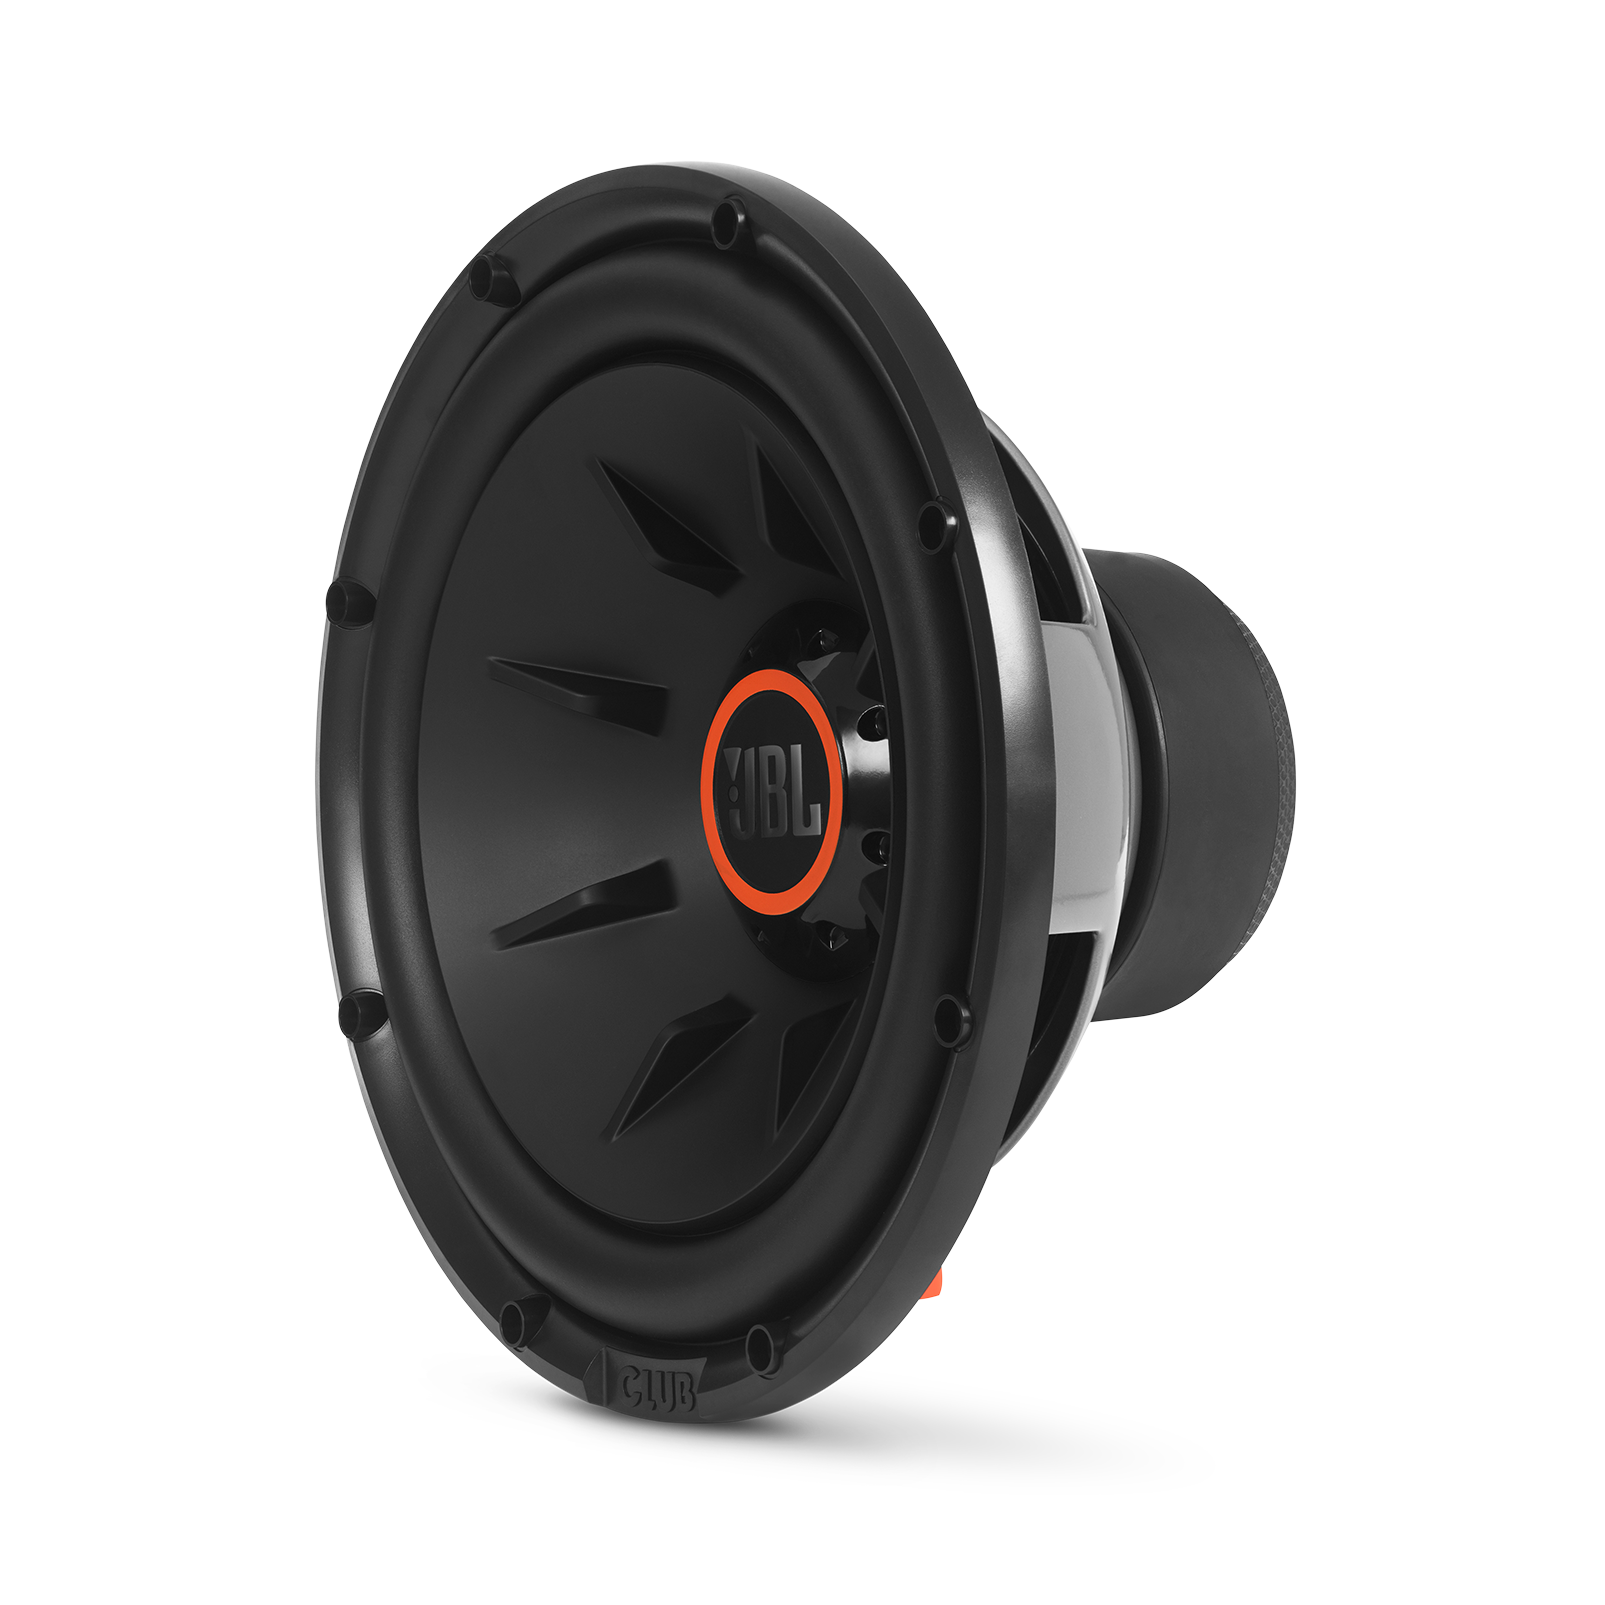 """Club 1224 - Black - 10"""" (250mm) and 12"""" (300mm) car audio subwoofers - Hero"""